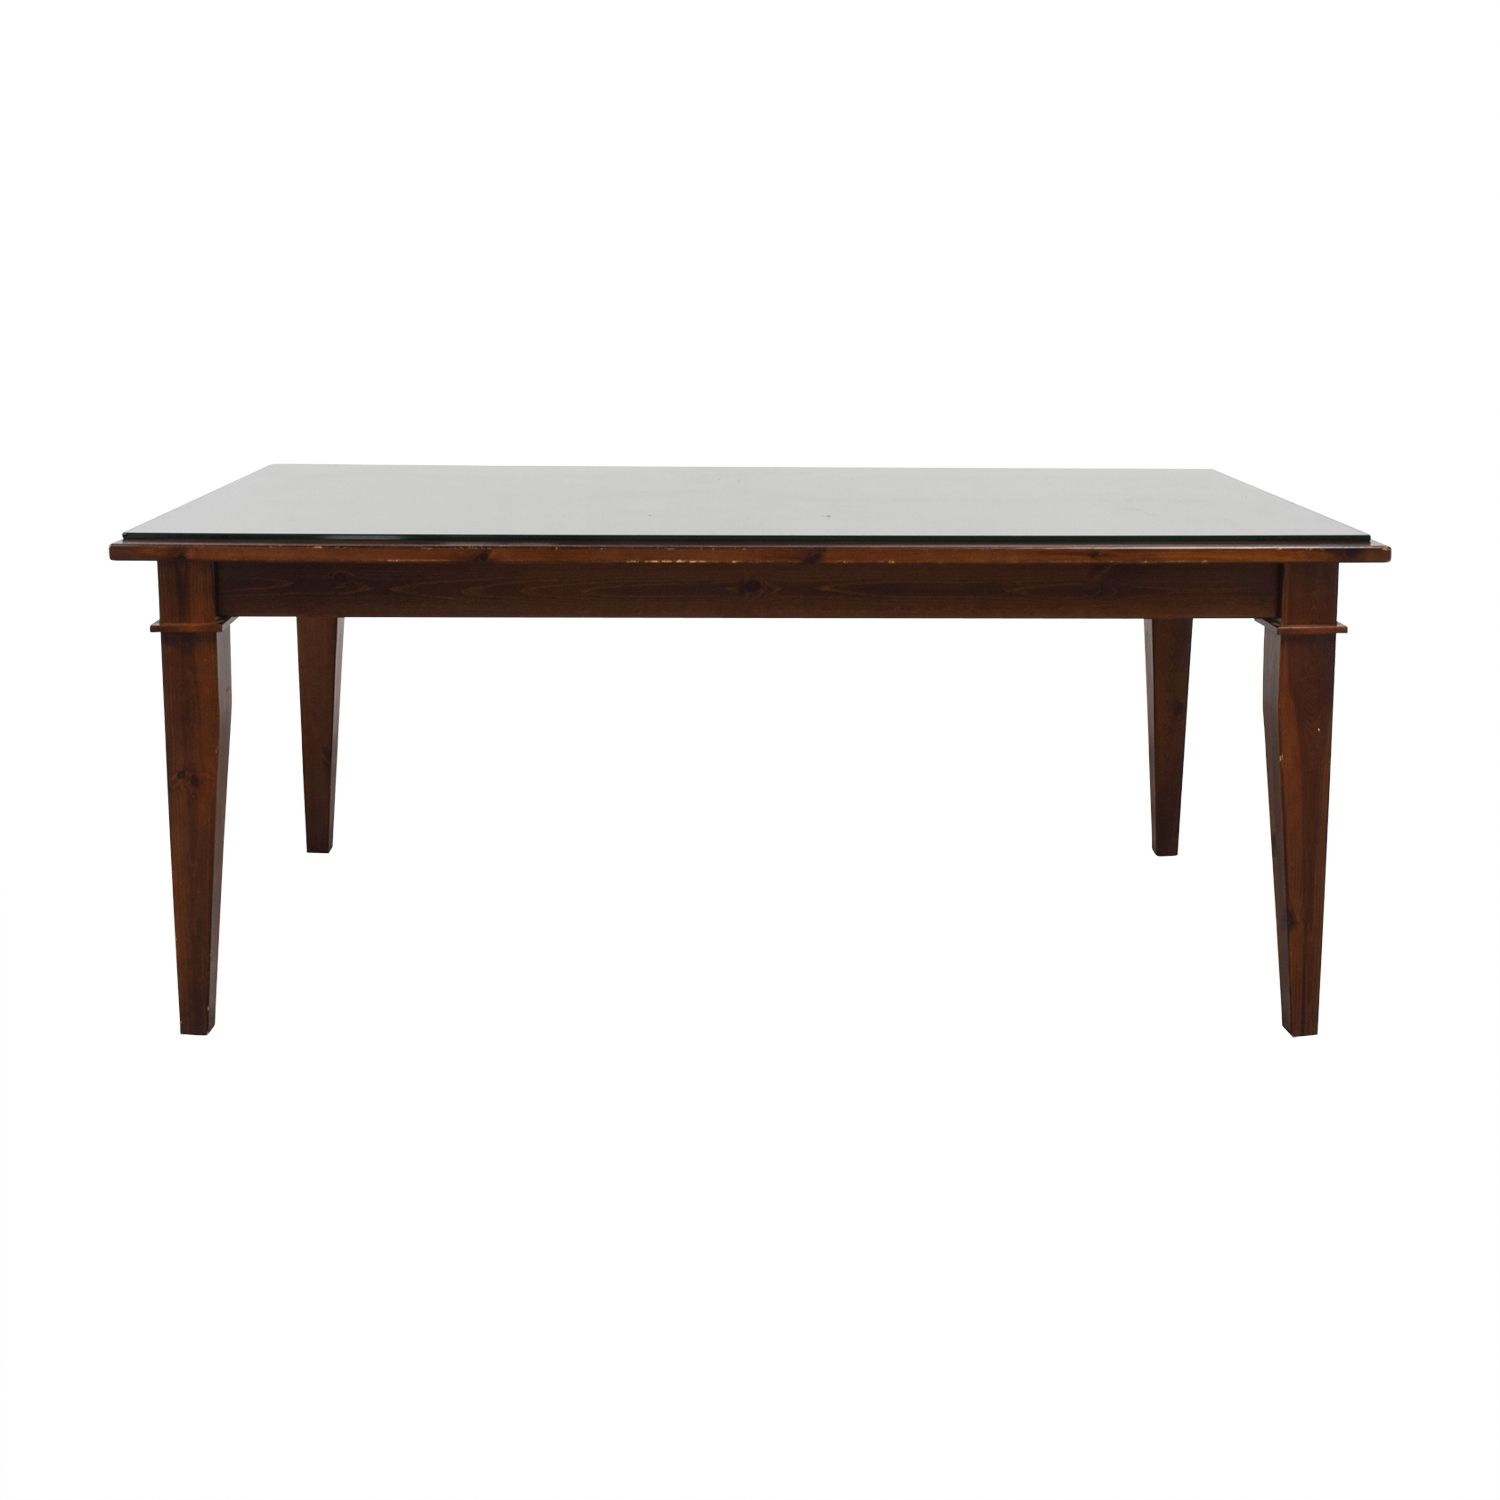 Pottery Barn Dining Table with Glass Top / Dinner Tables